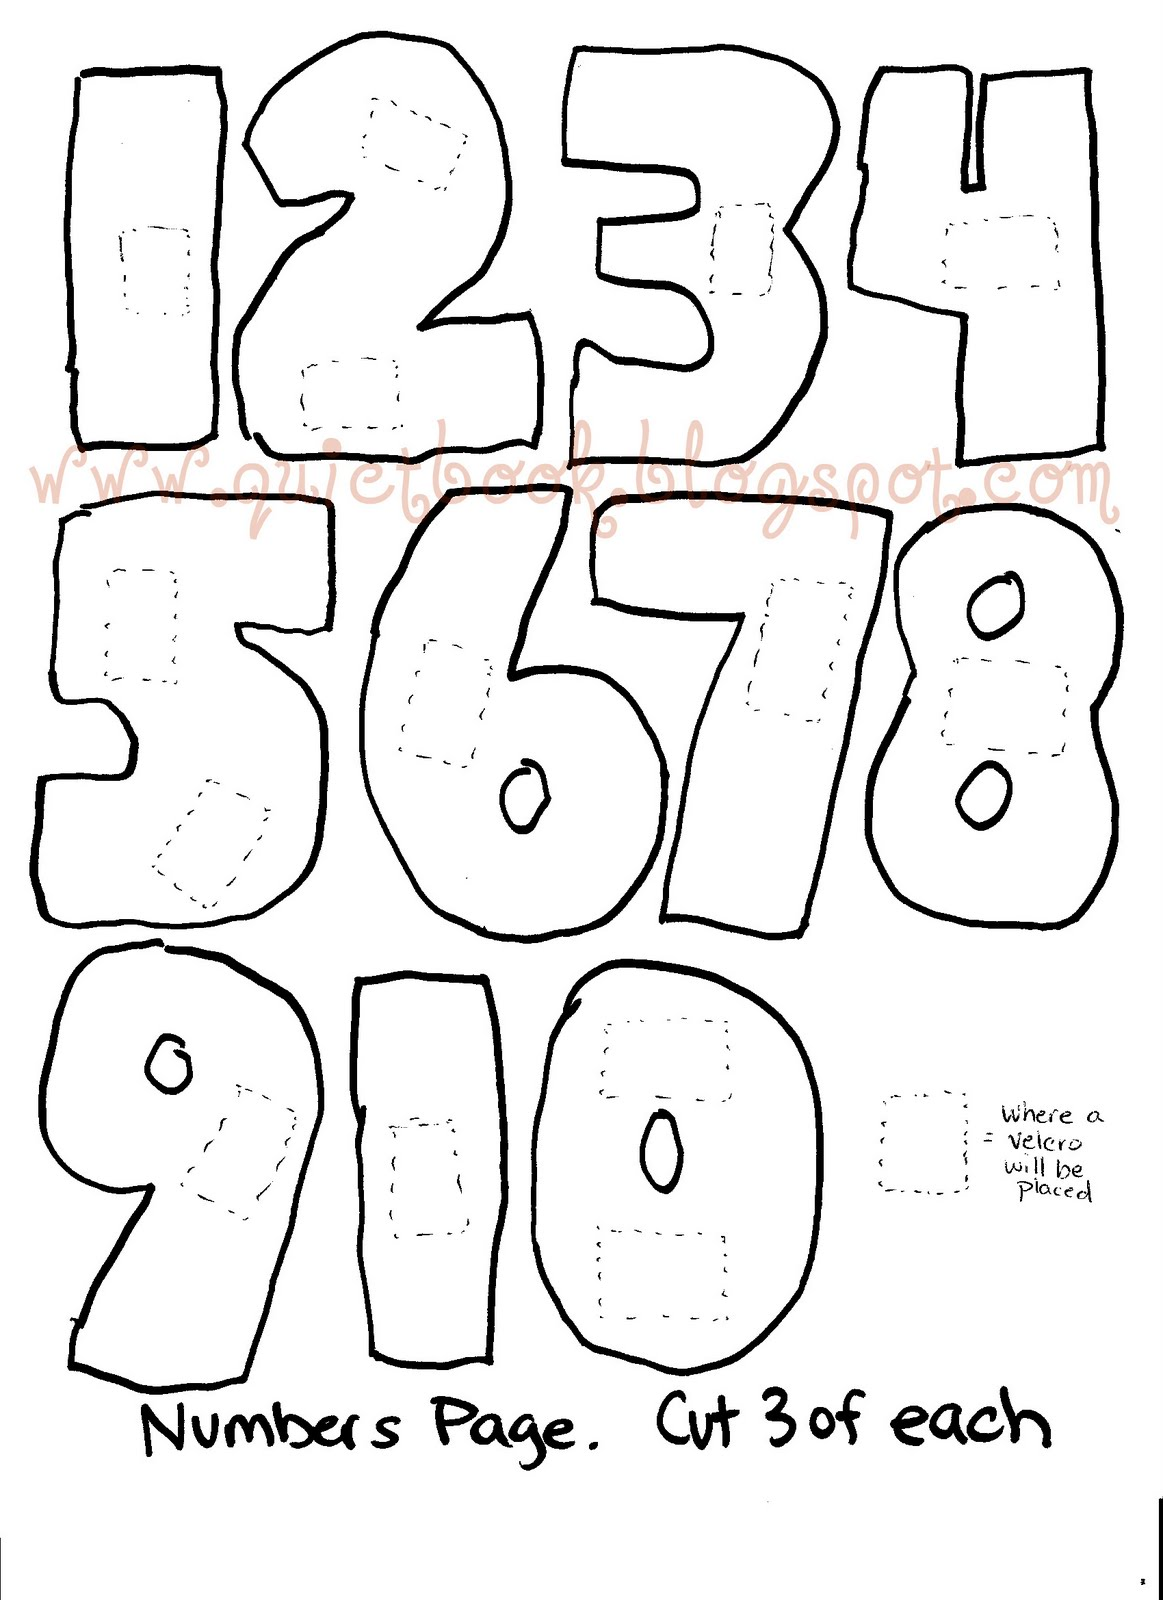 Worksheet Free Printable Numbers 1-10 number templates 1 10 varsity 13 14 teaches numbers matching color recognition